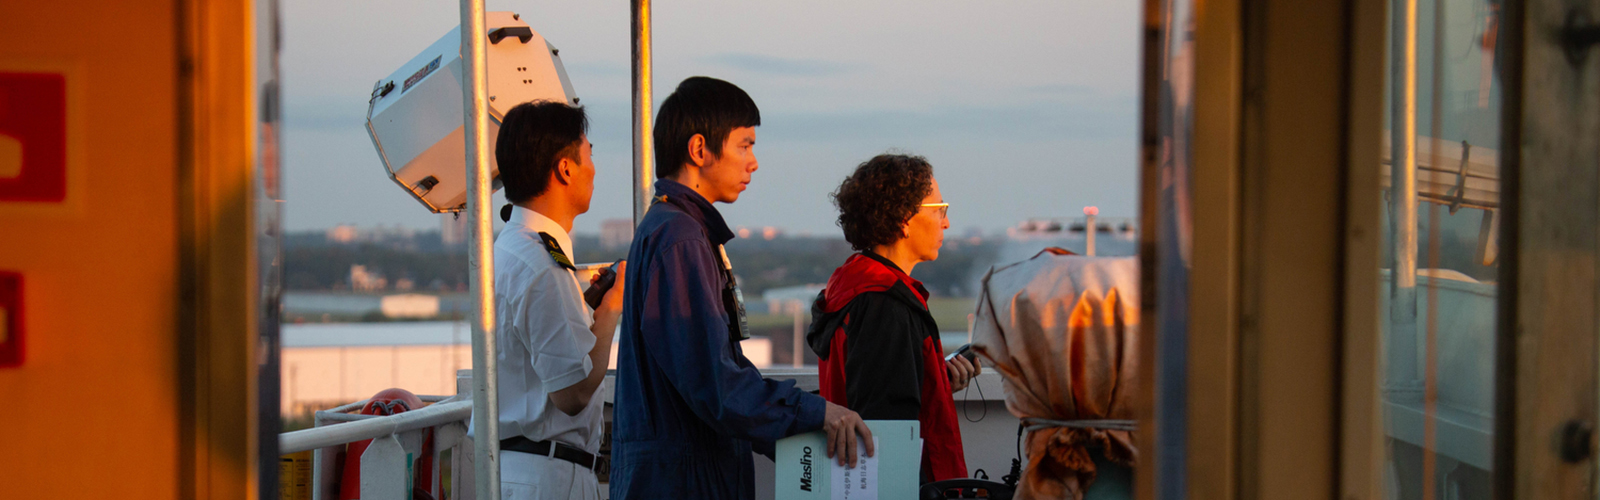 Harbor Pilot Carolyn Kurtz leads a Chinese crew as they dock an 857-foot container ship arriving in Port Tampa Bay from international waters.